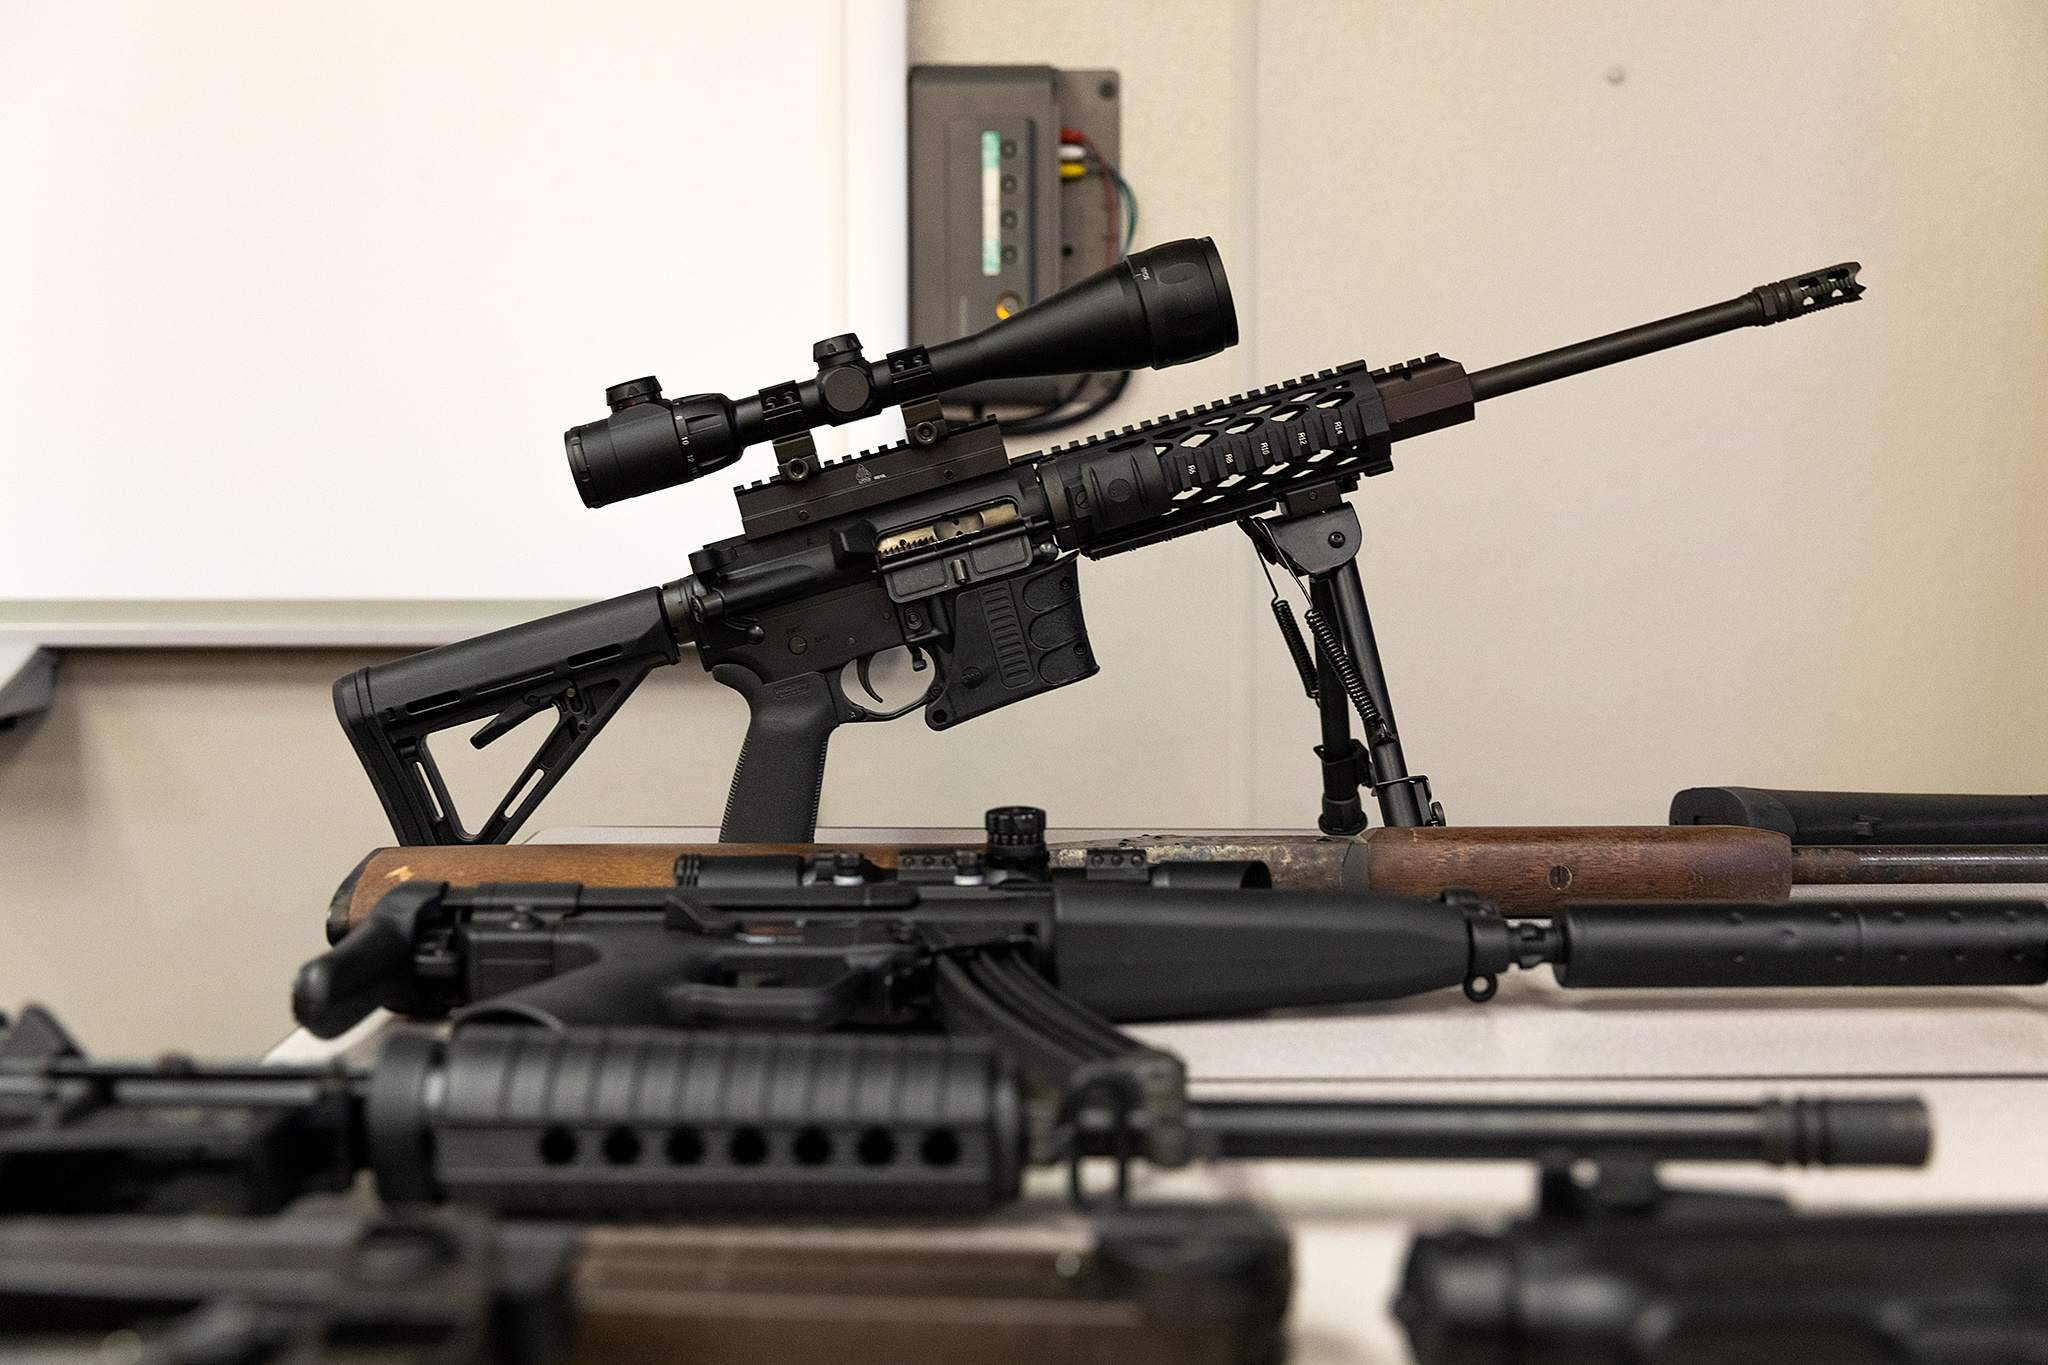 Sheriff Dart Proposes Reforms to Close Deadly Gun Regulation Loopholes